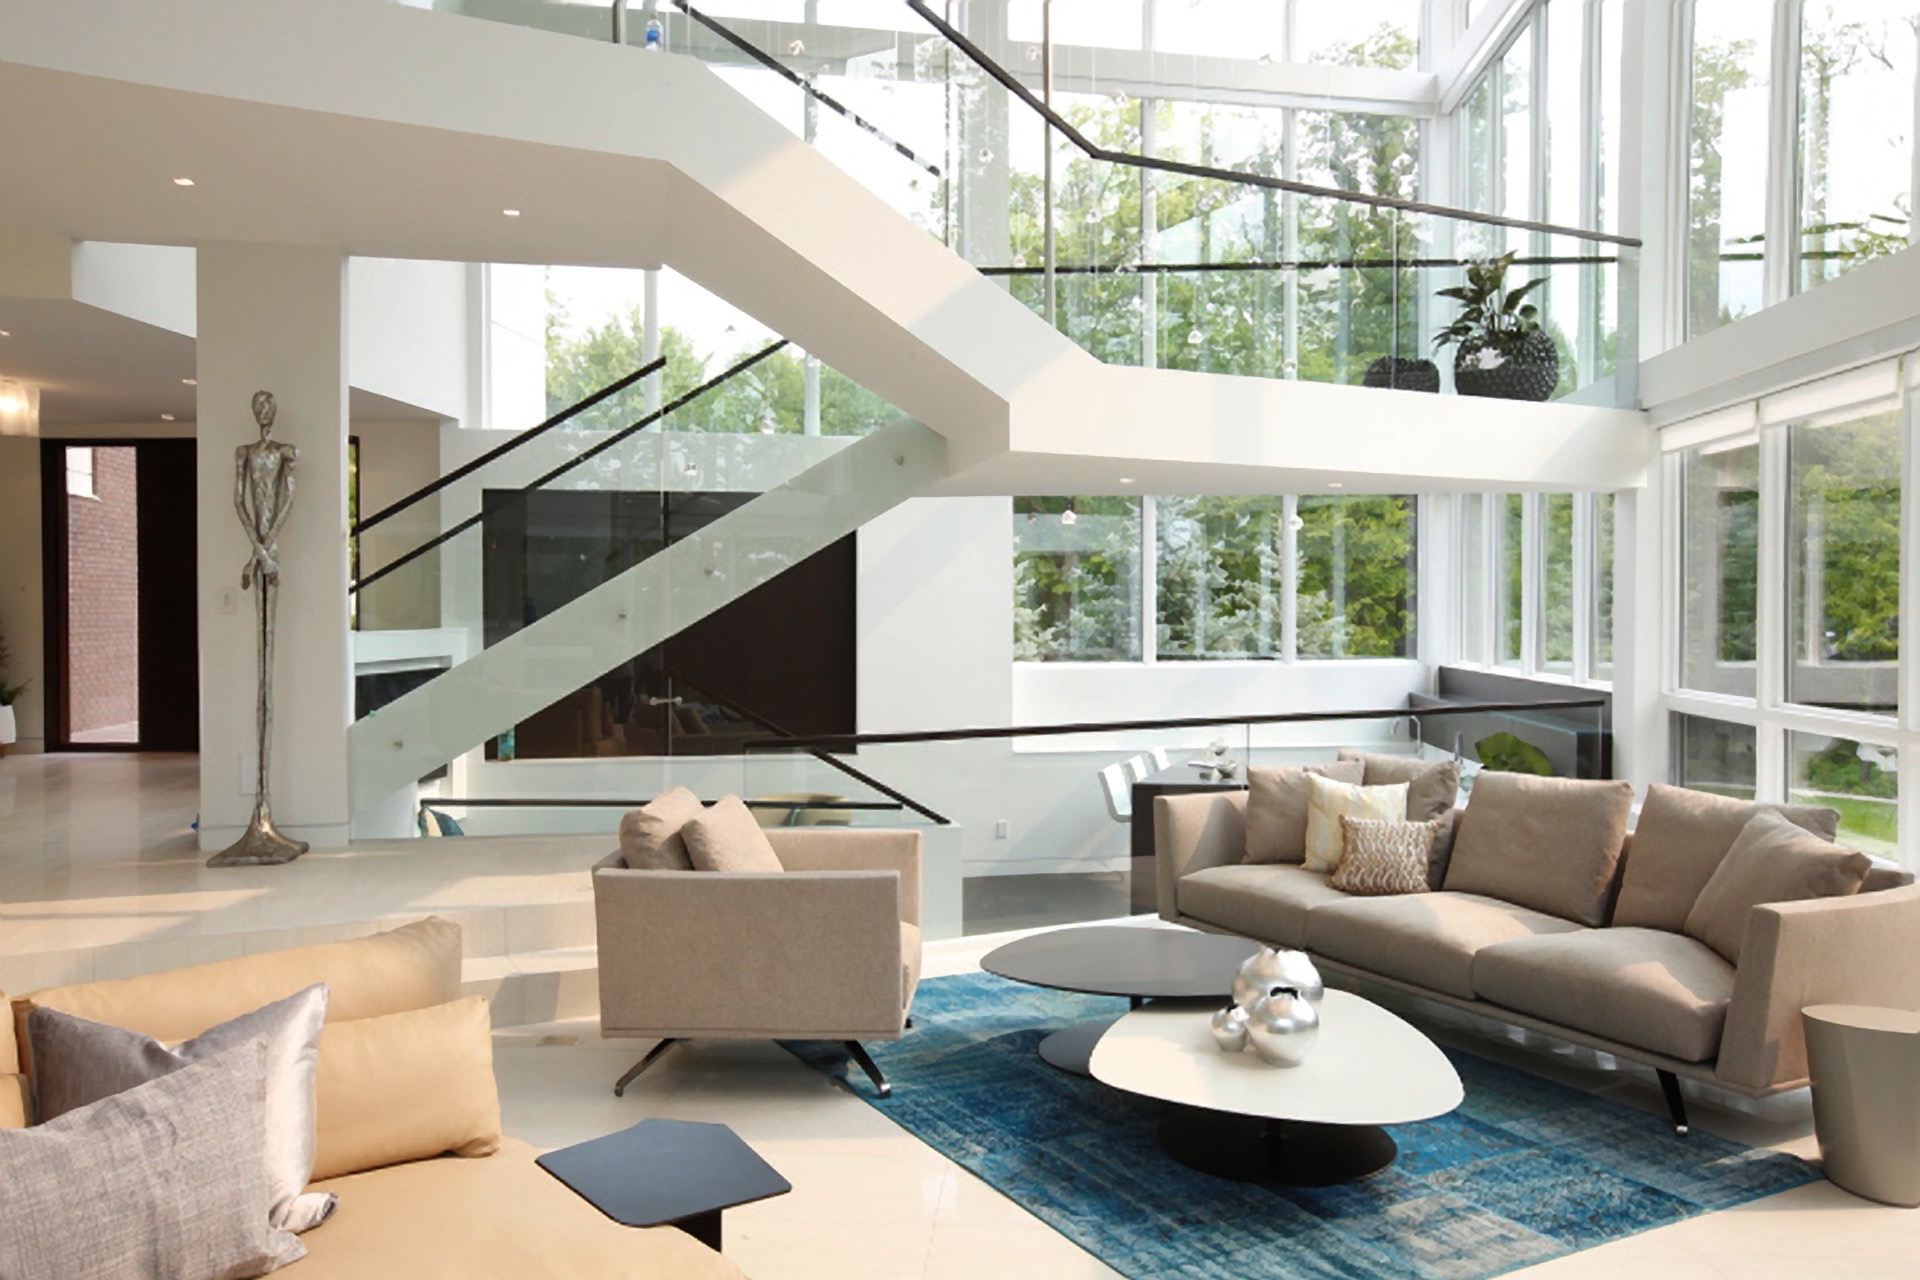 Contemporary Living Room With Large Glass Windows (View 6 of 31)